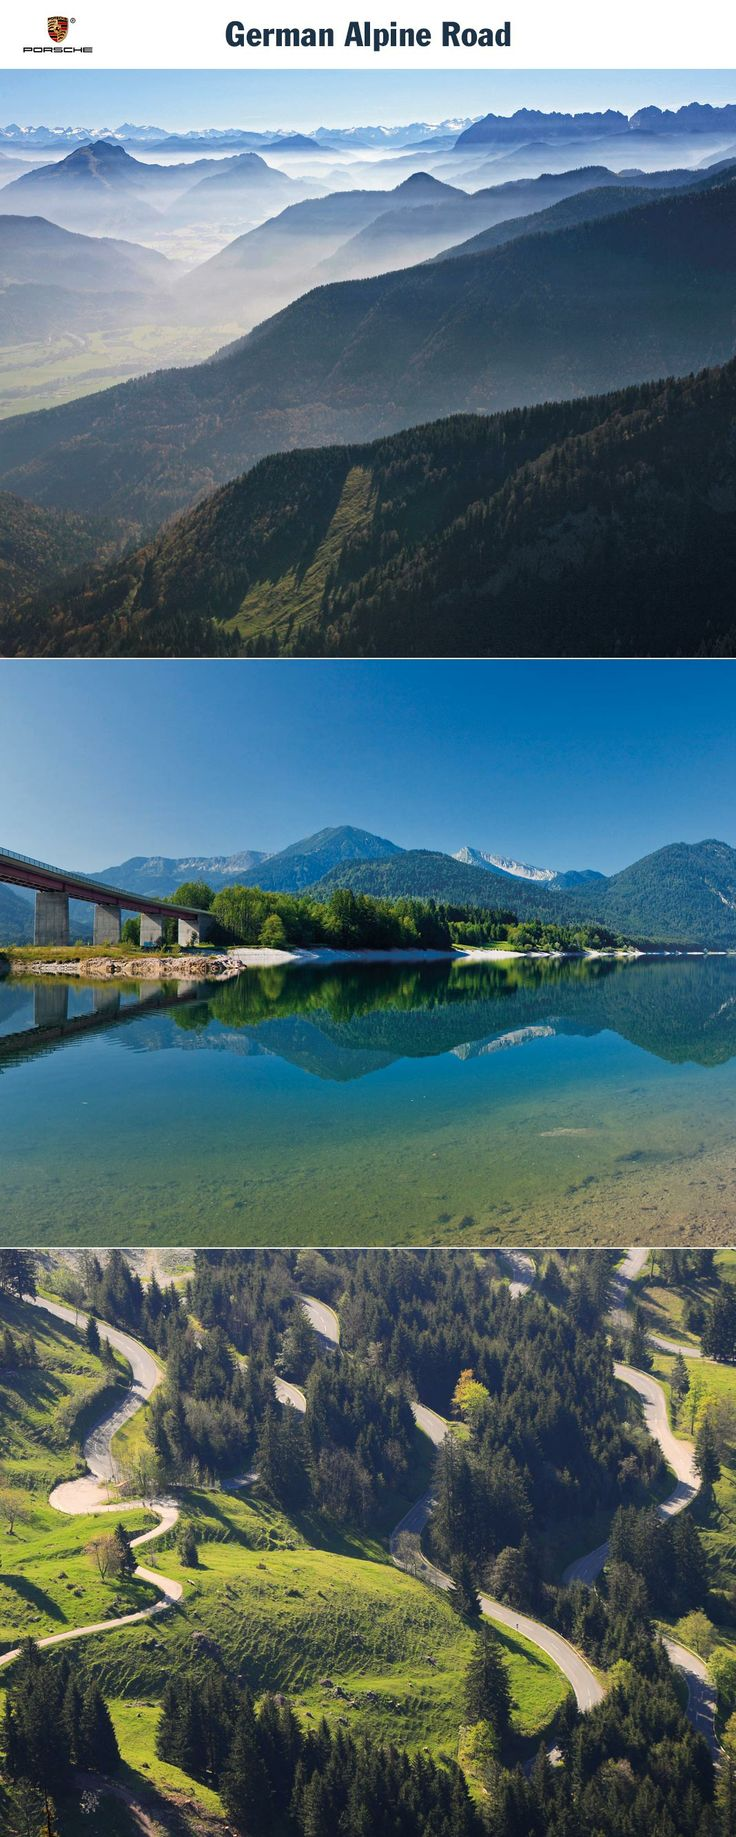 German Alpine Road, Germany. Viva Bavaria: 500 km from Lake Constance to the Königssee. Start: Lindau. Destination: Königssee. Driving time: Approx. 8.5 hours. Distance: Approx. 500 km (311 miles). Recommended travel time: April - October.   Learn more: http://link.porsche.com/gts/germany